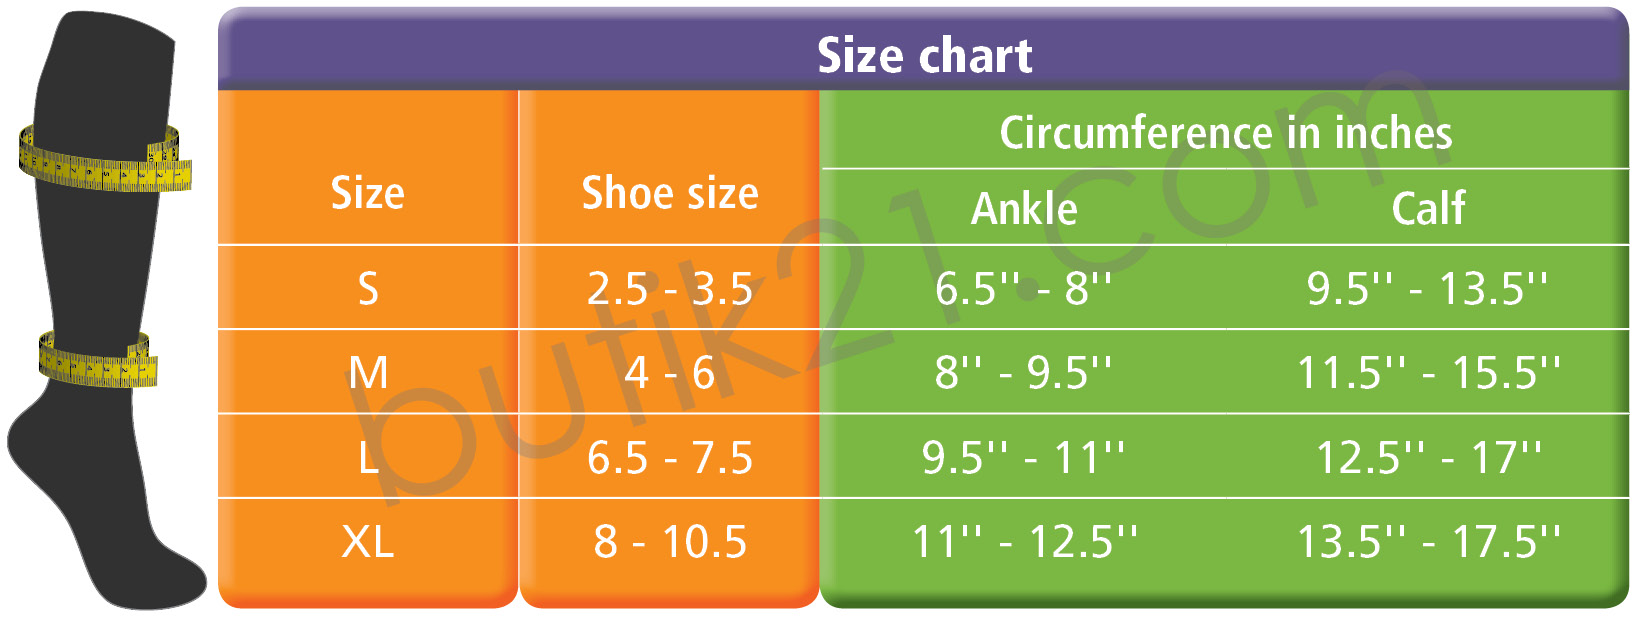 Size chart compression socks